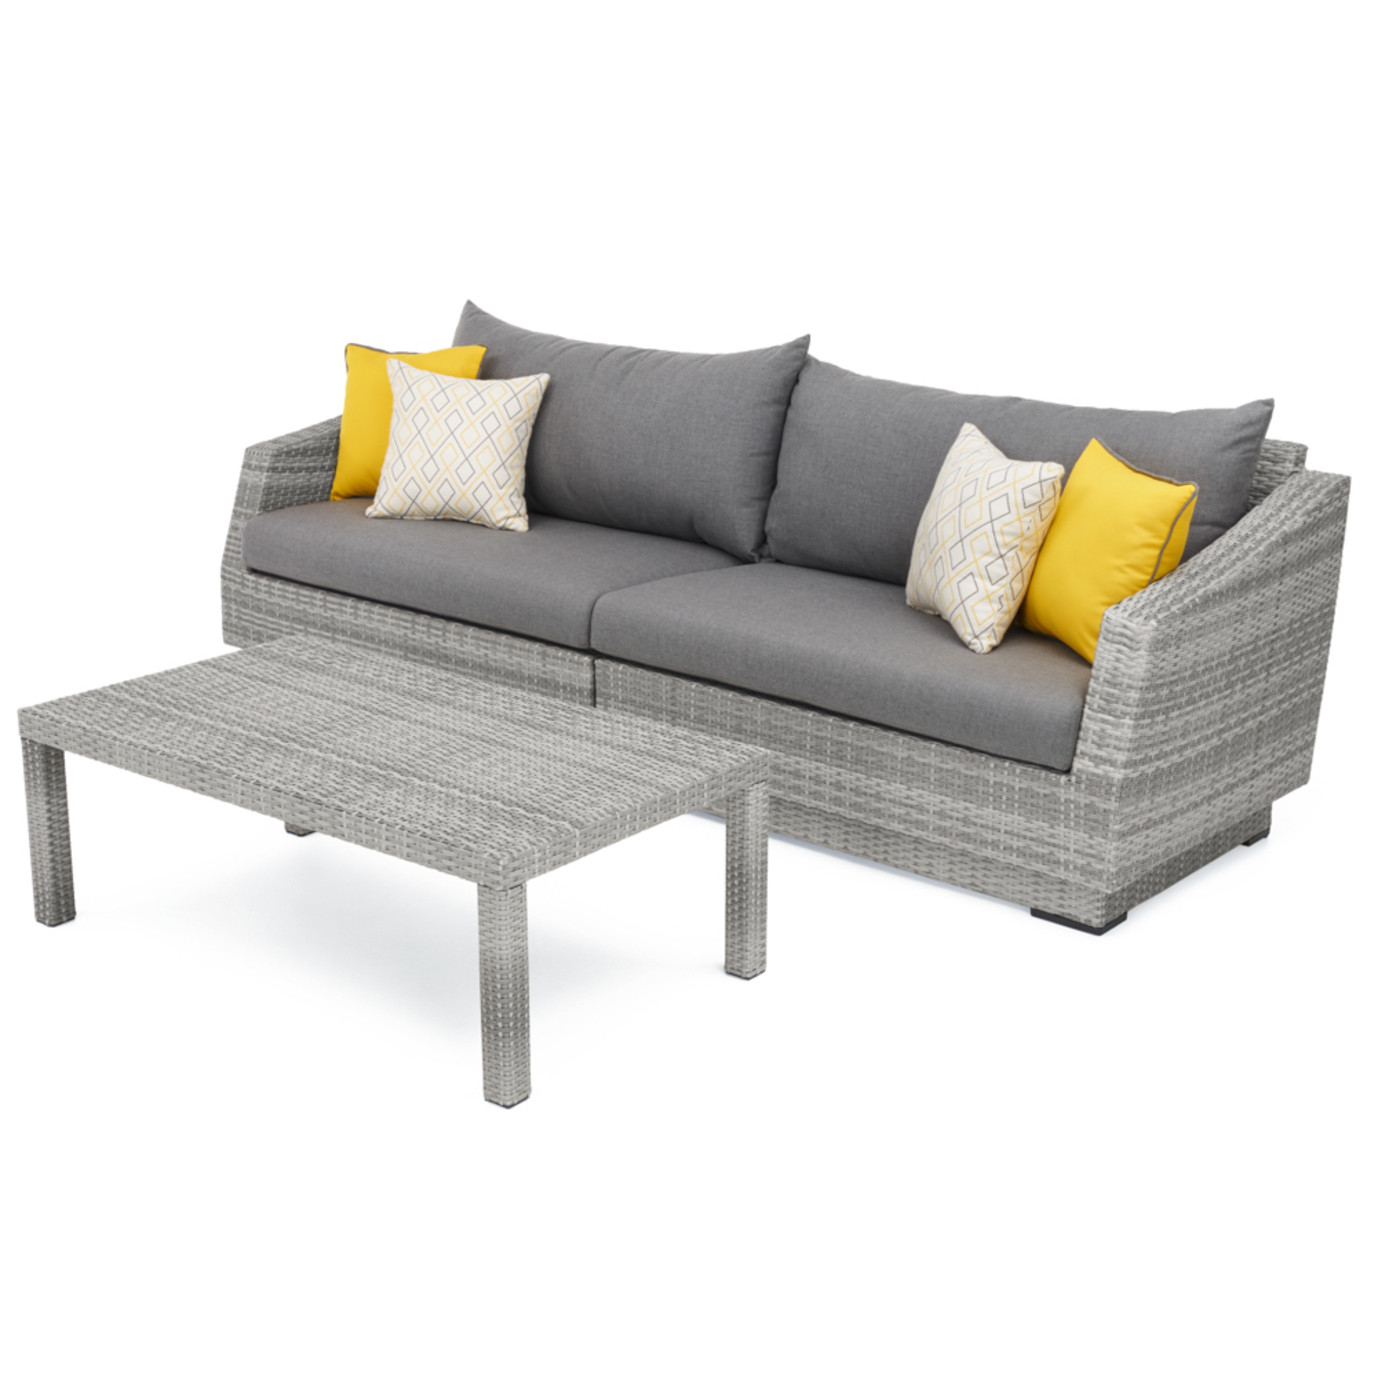 Cannes™ Sofa with Coffee Table - Sunflower Yellow